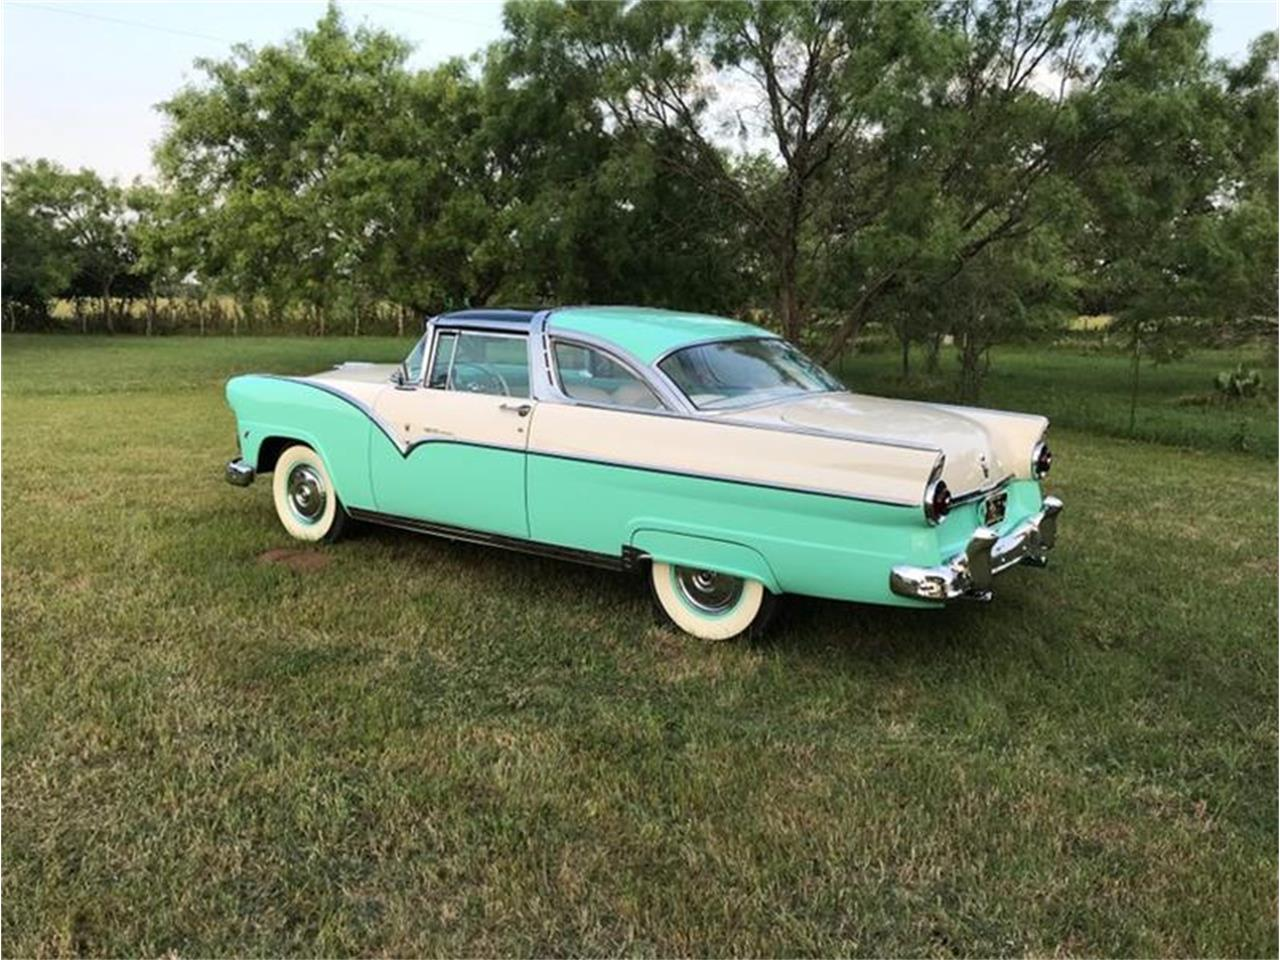 Large Picture of Classic '55 Ford Crown Victoria - $49,500.00 - QABS